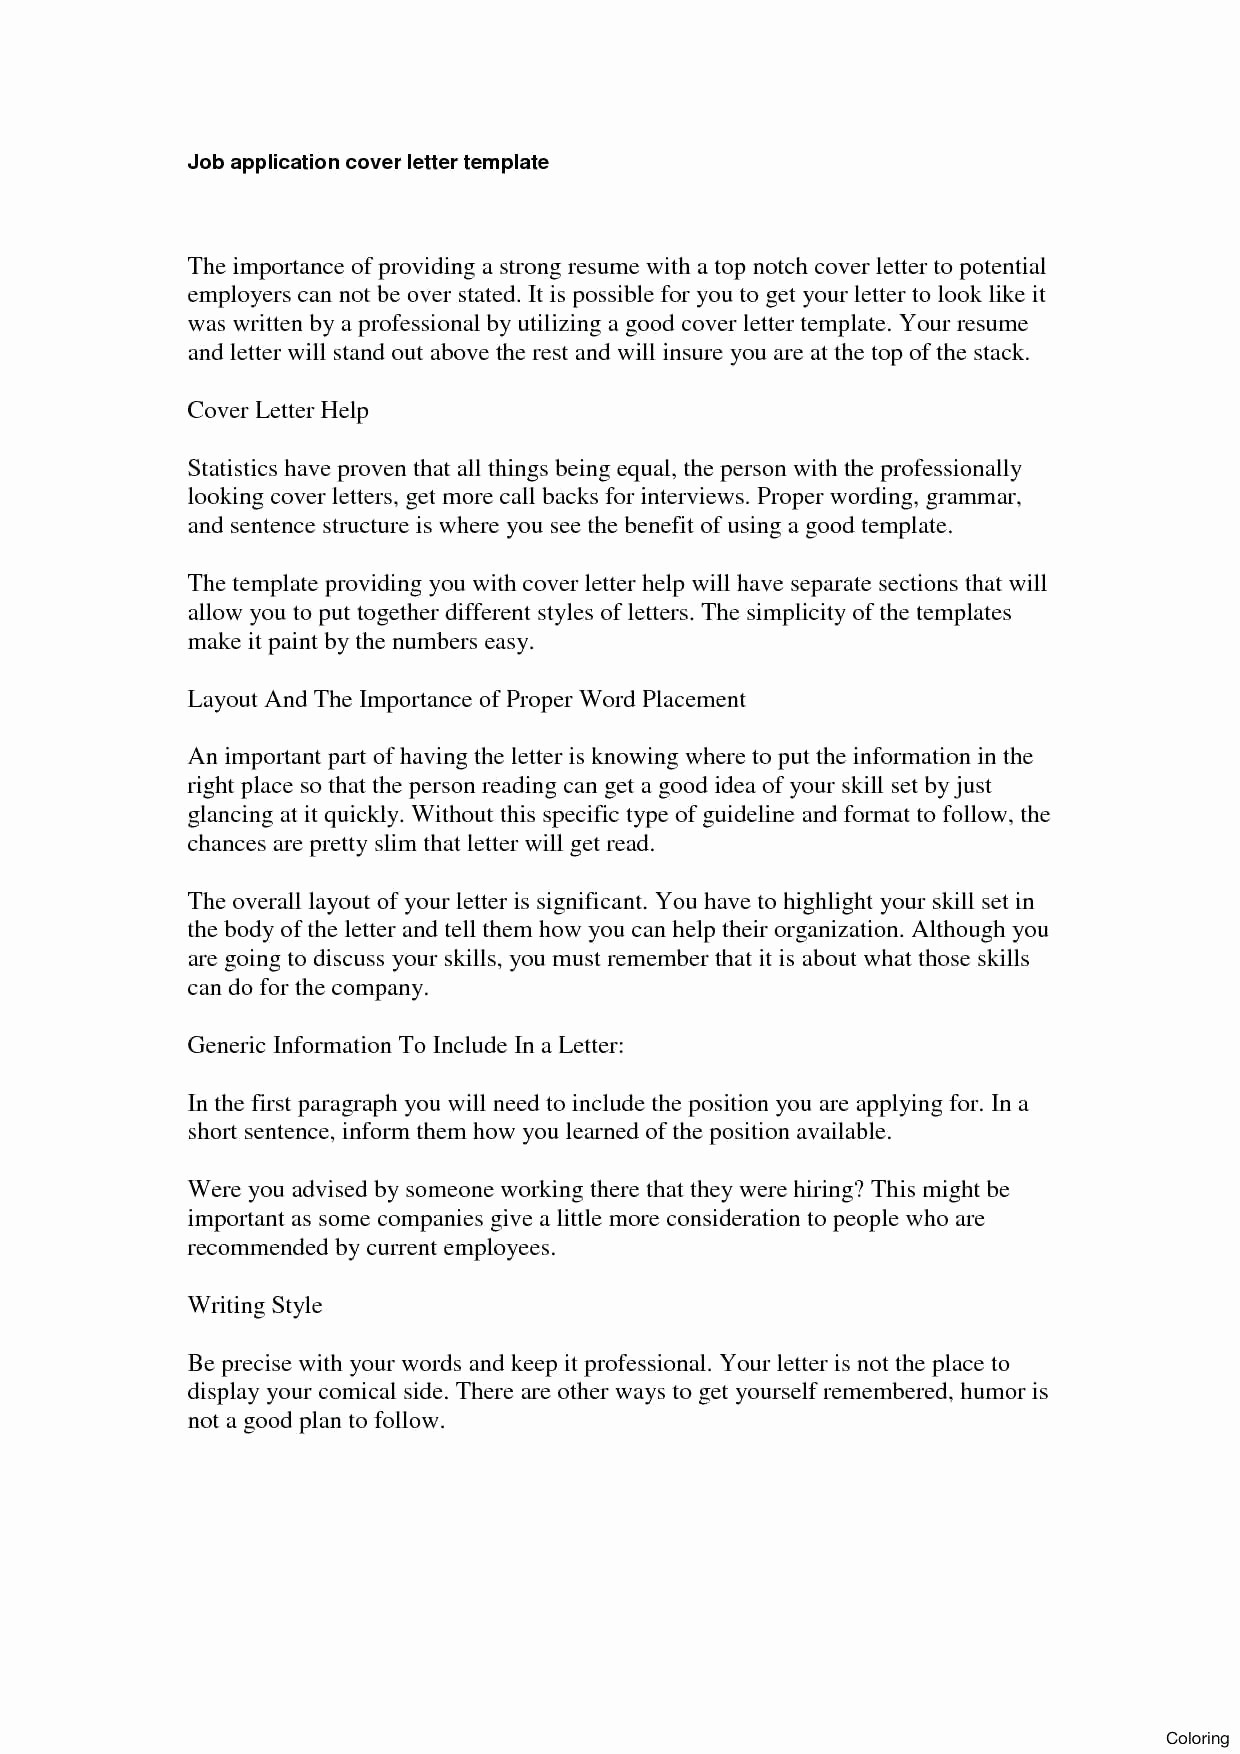 Resume Cover Letter Templates Word Best Of Template Application Cover Letter Template Word